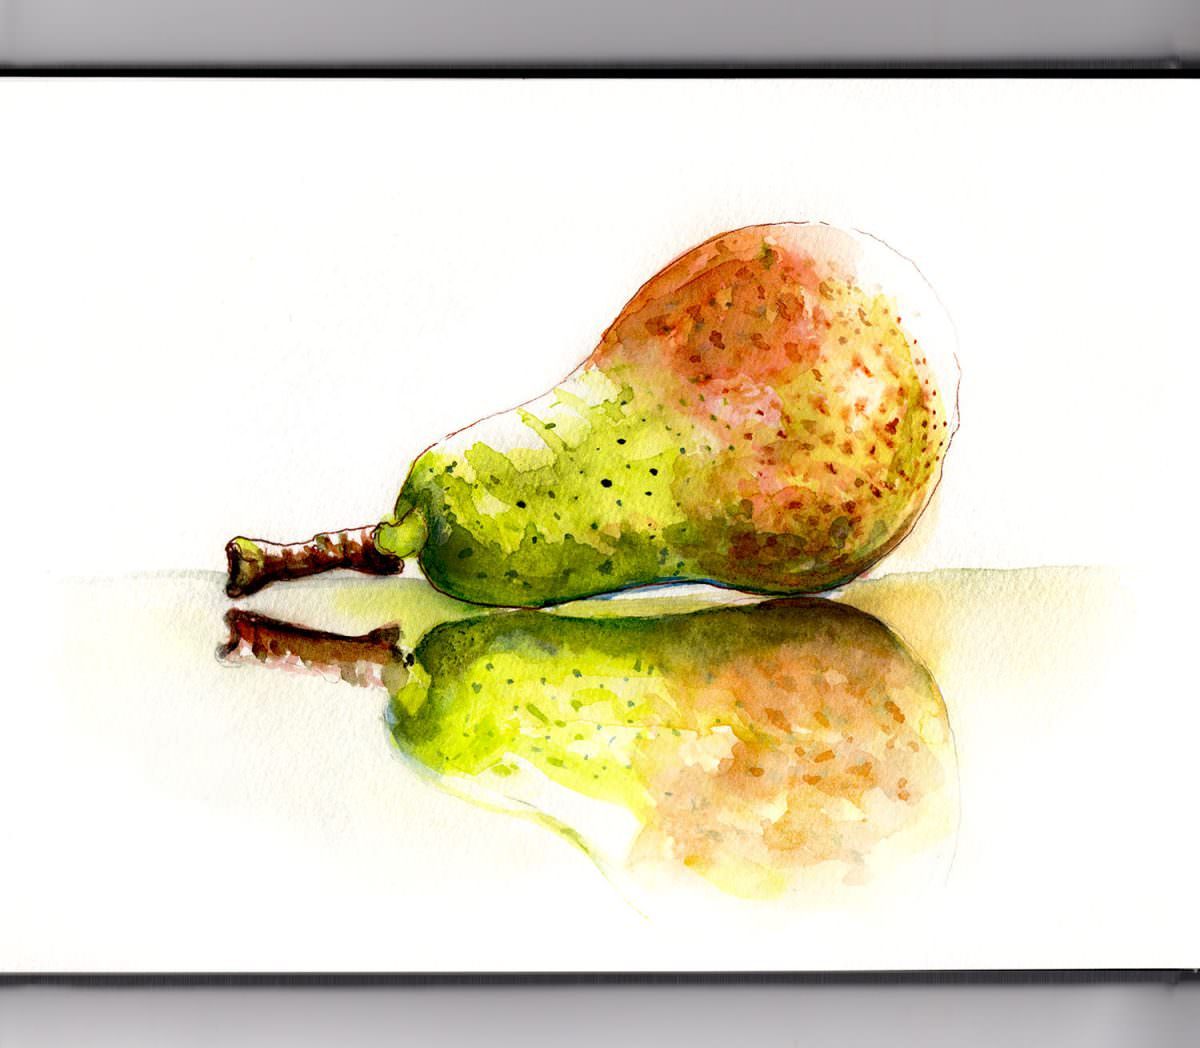 #WorldWateroclorGroup - Day 20 - Reflections On Pears - Doodlewash